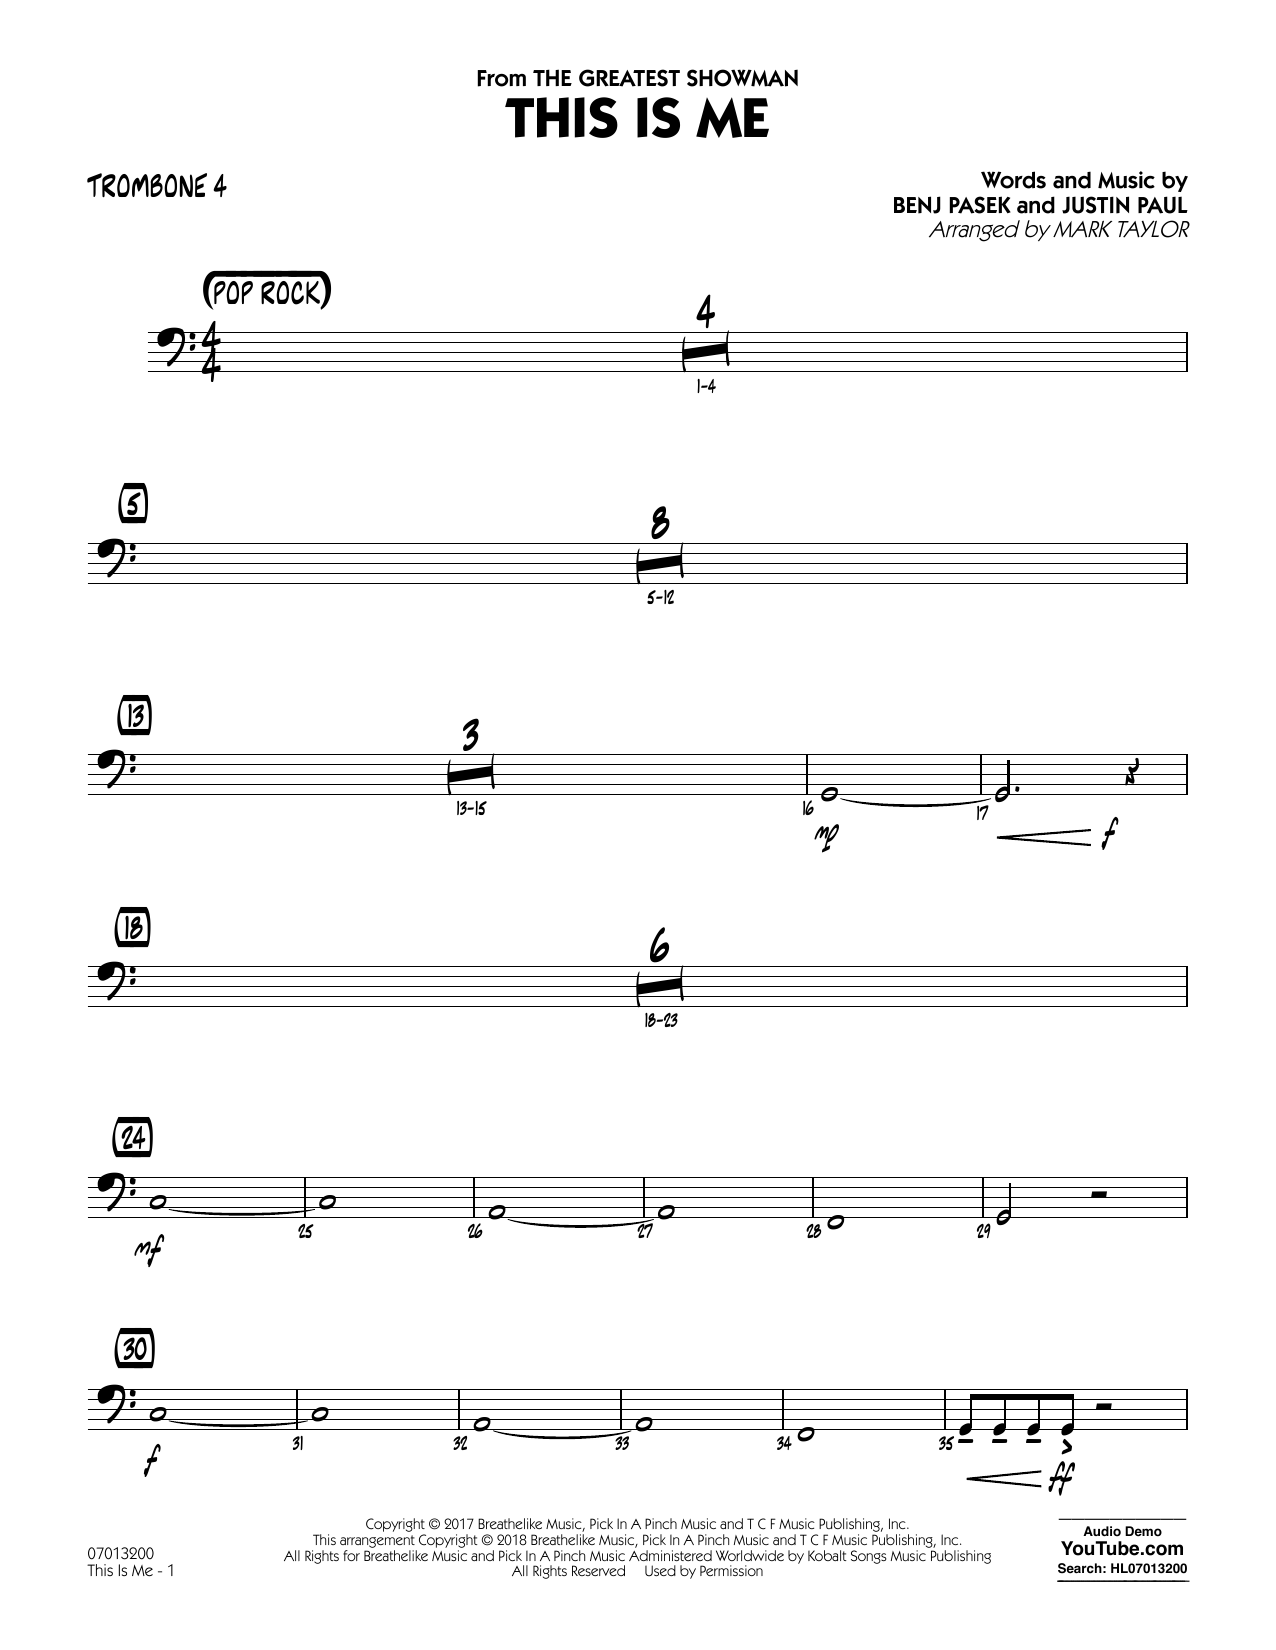 This Is Me (from The Greatest Showman) (arr. Mark Taylor) - Trombone 4 (Jazz Ensemble)